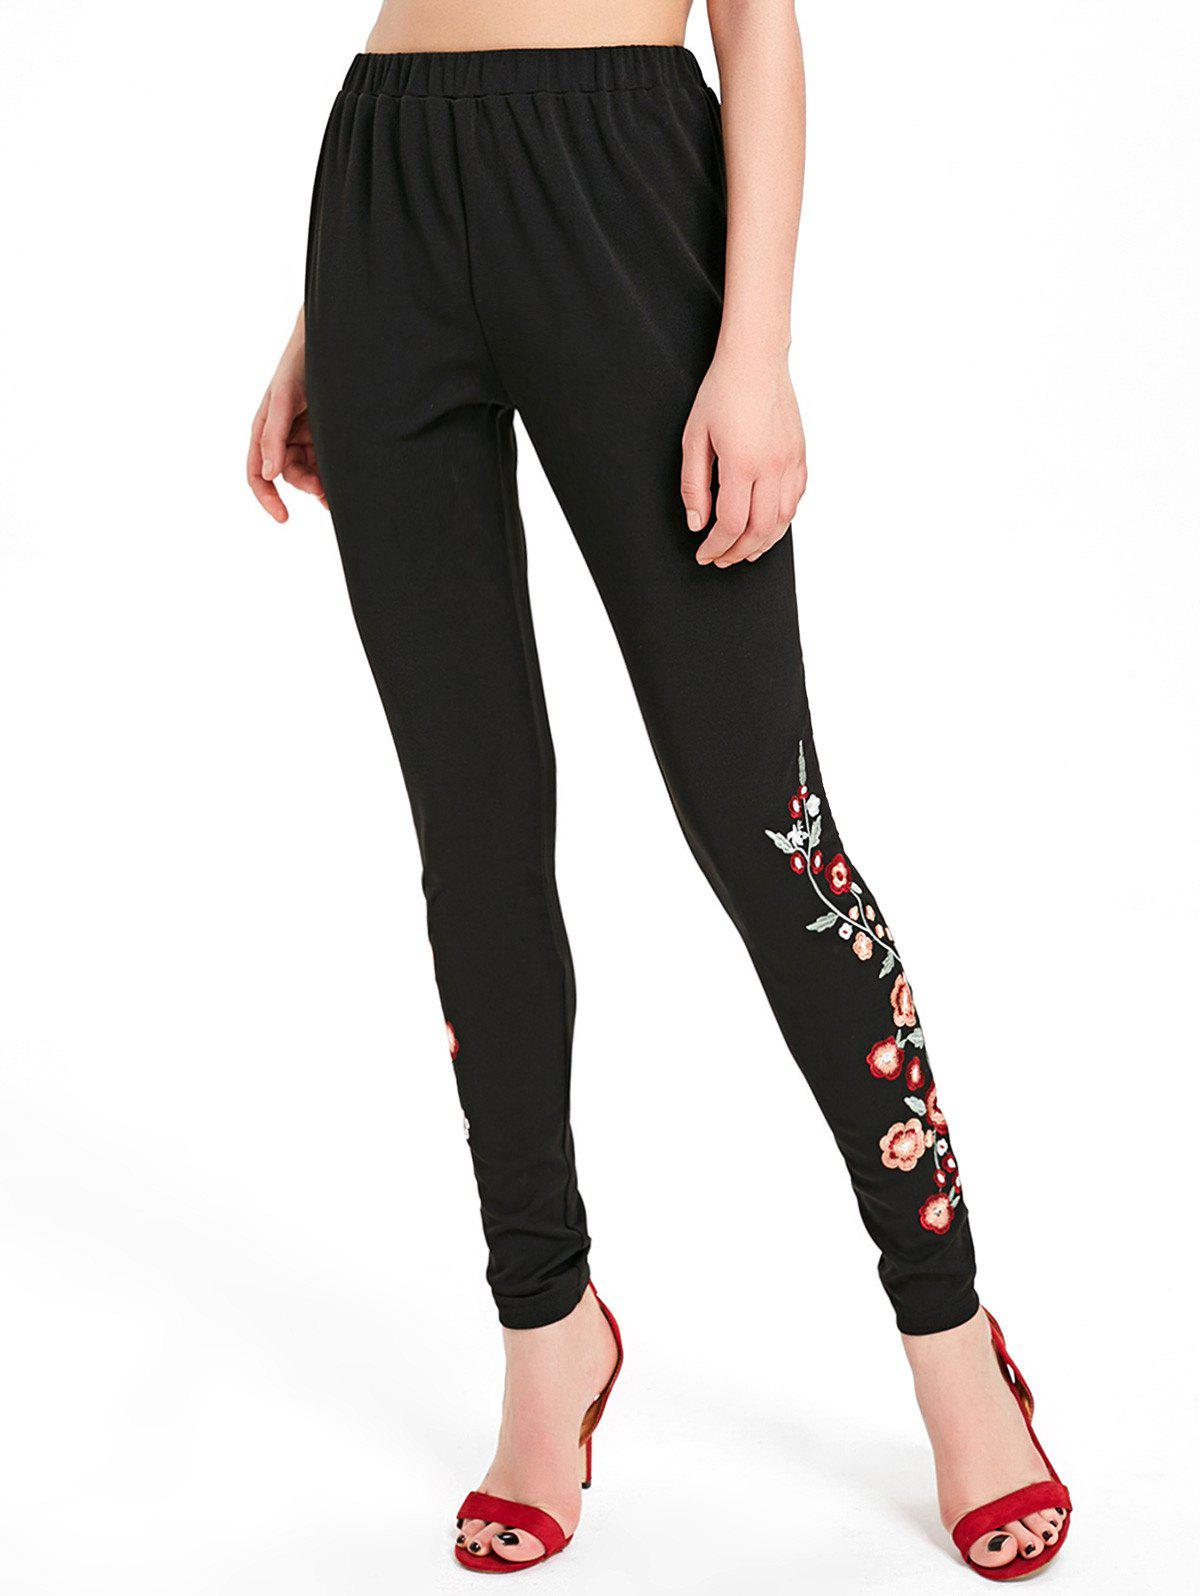 Shop Floral Embroidery Pants